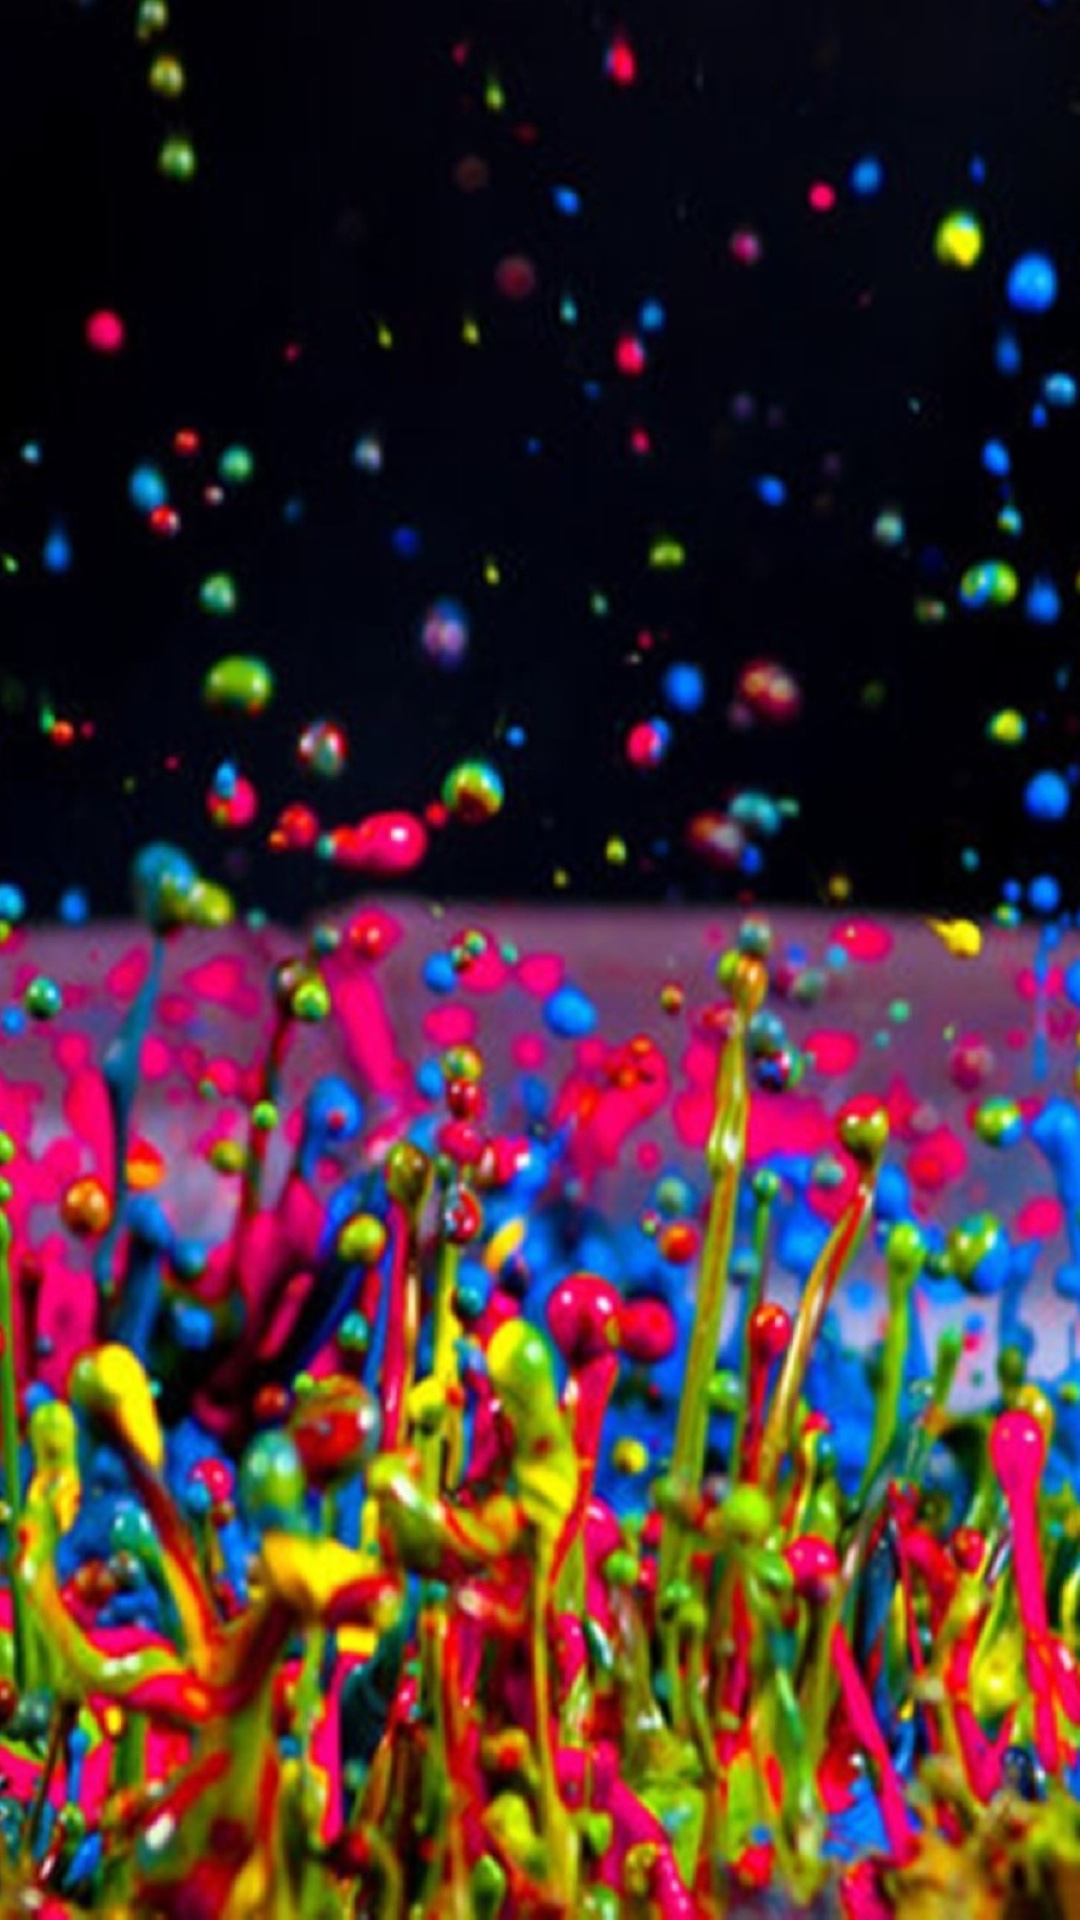 Bright phone wallpapers top free bright phone - Neon hd wallpaper for mobile ...